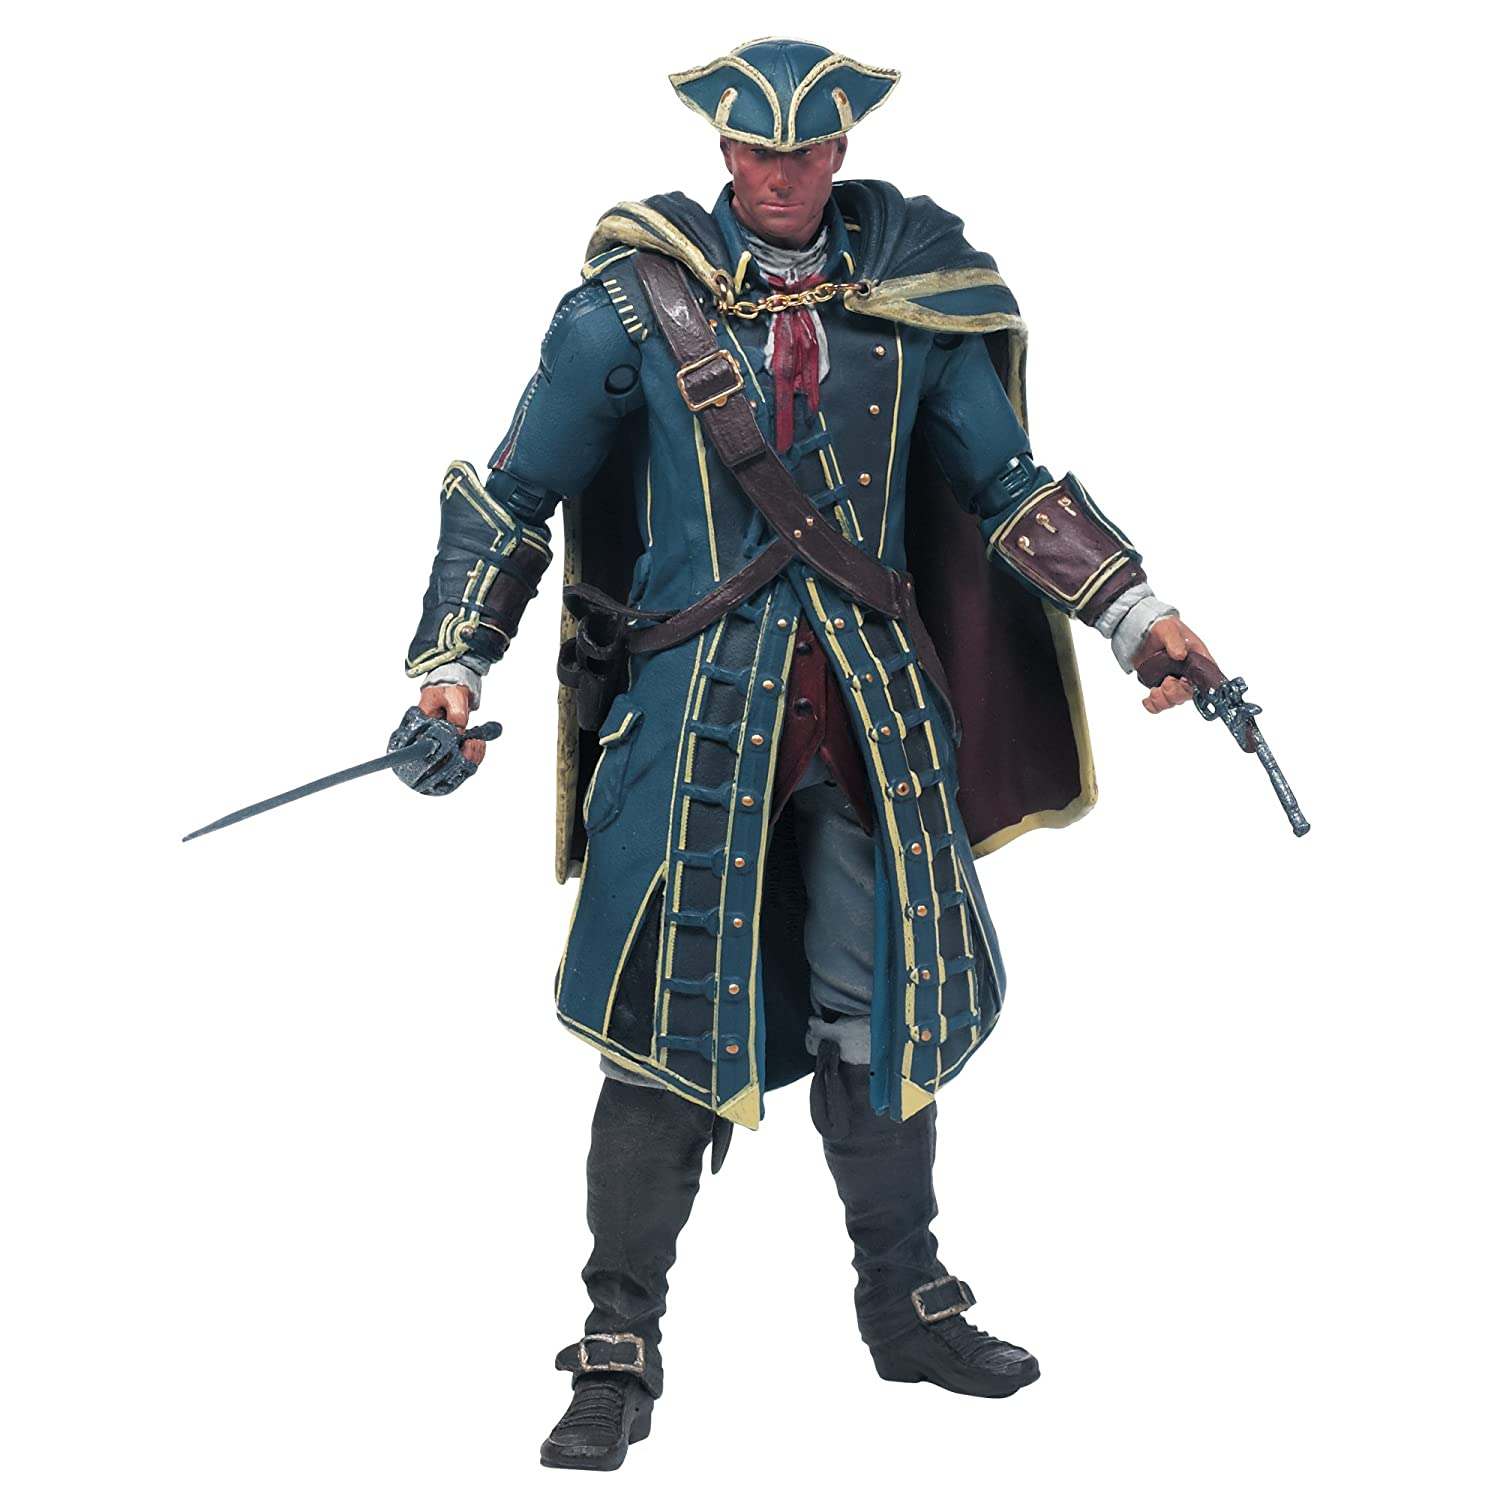 McFarlane Toys Assassins Creed Haytham Kenway Action Figure